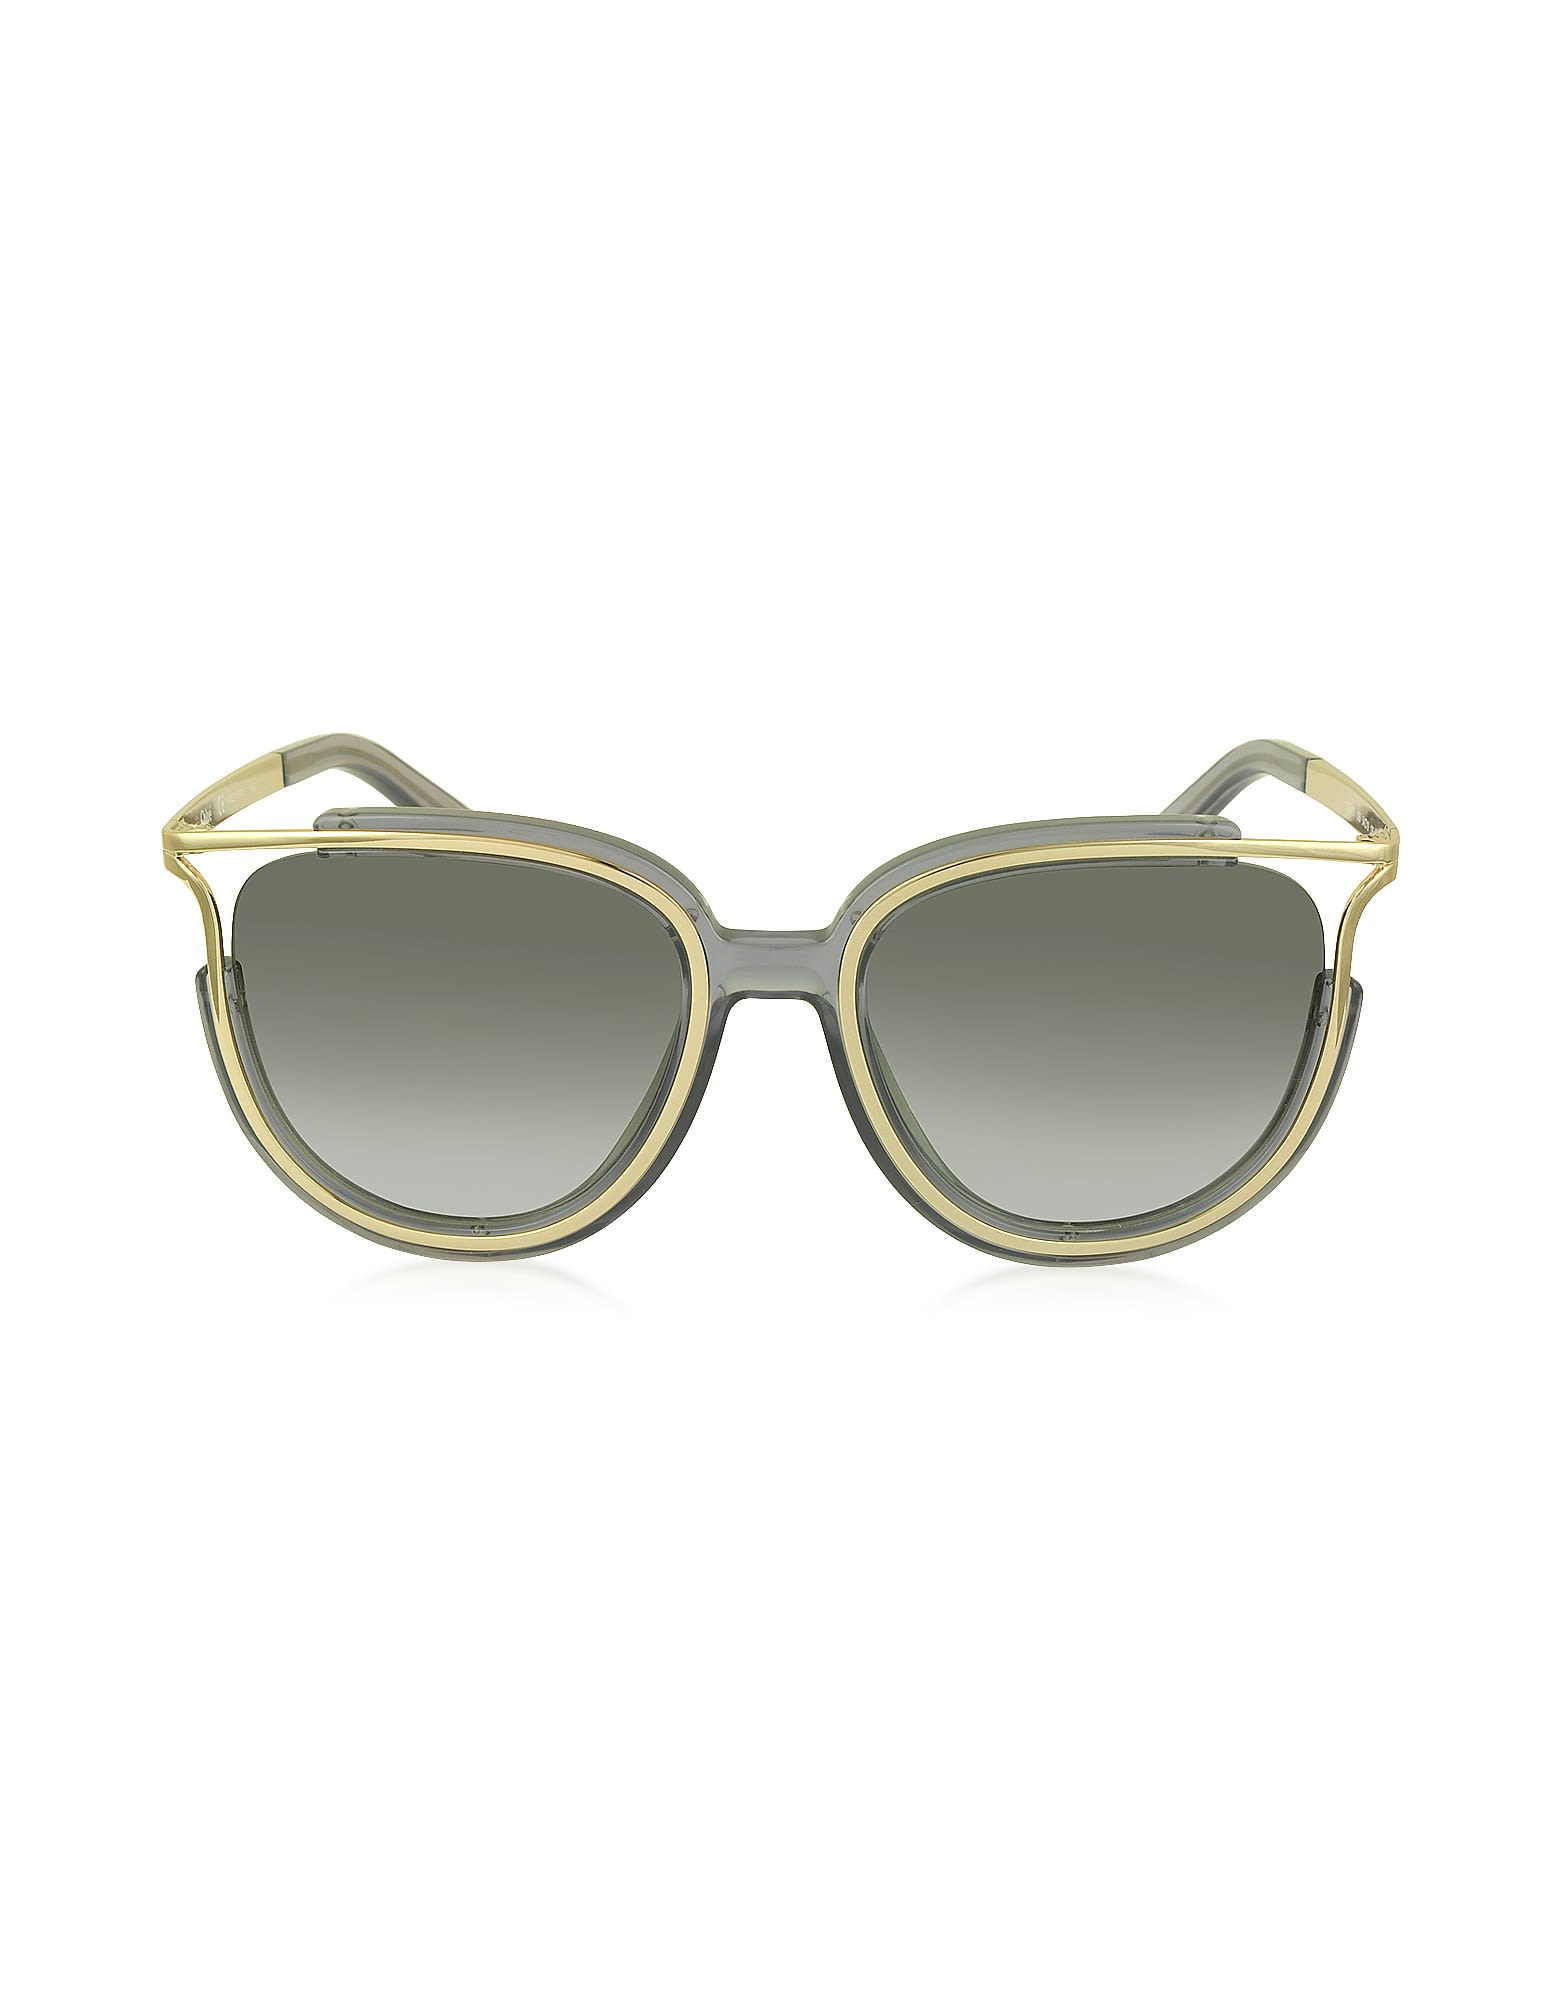 Chloe Jayme Ce 688s 036 Gray Acetate And Silver Metal Square Women's Sunglasses